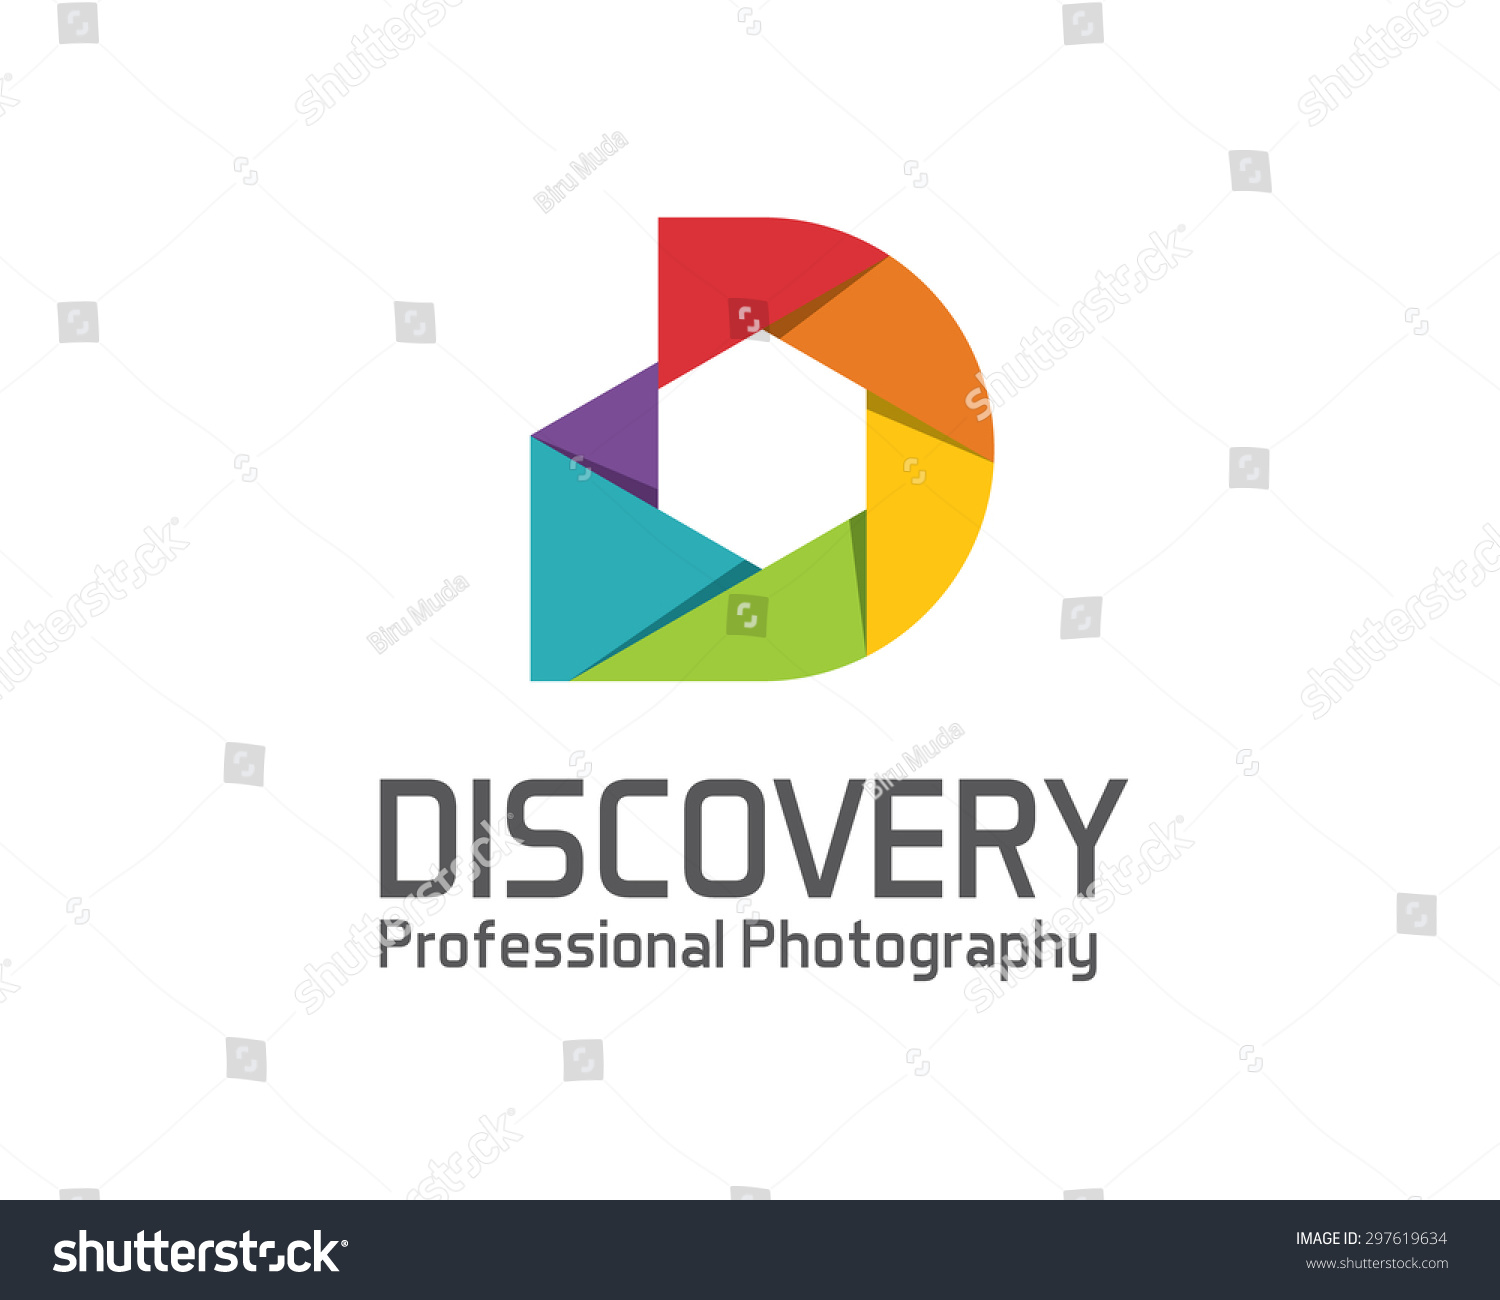 Photography Logo Design Templates Zrom